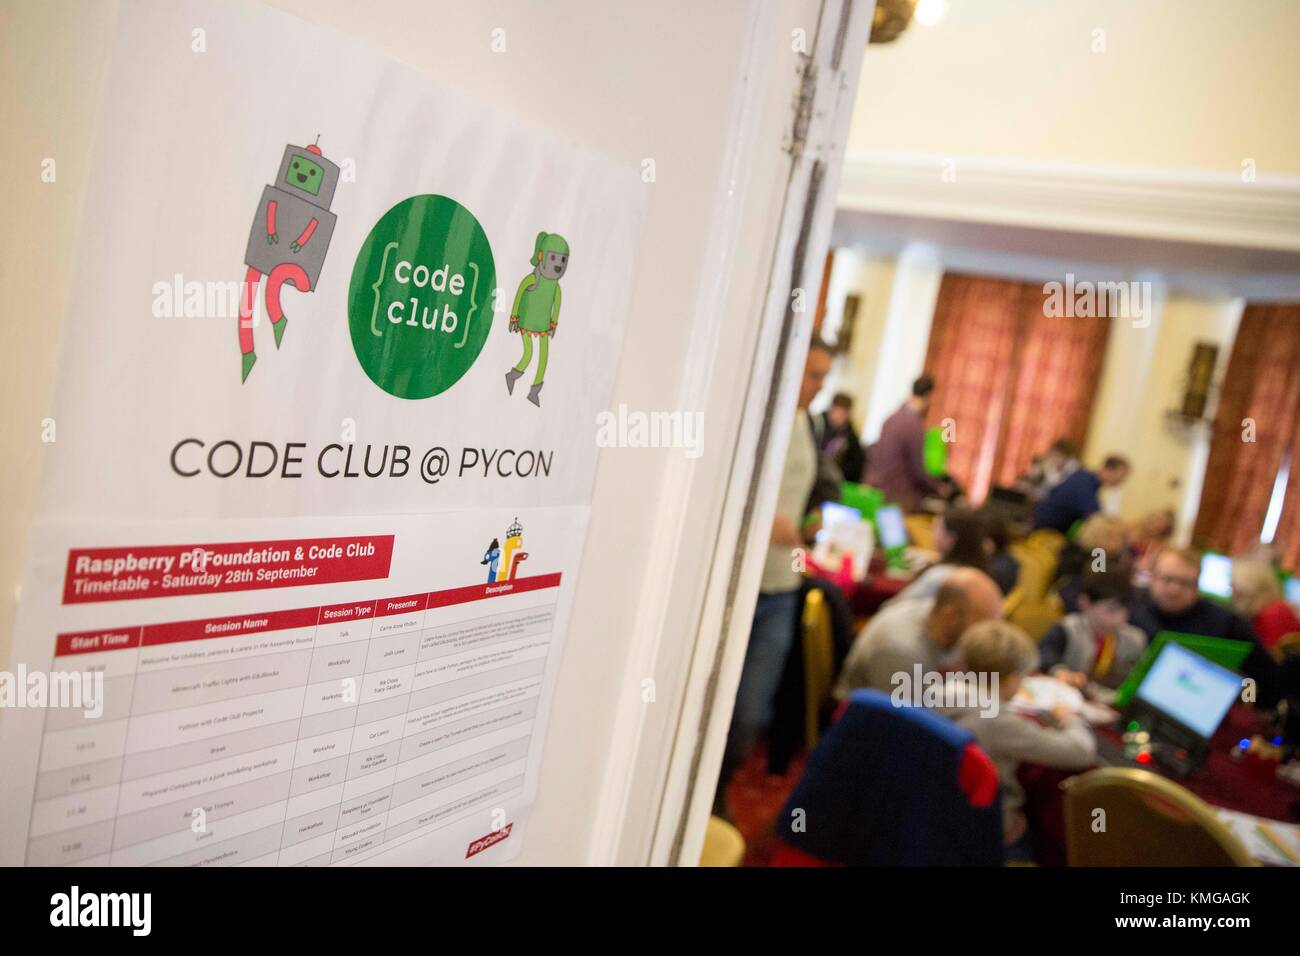 Code Club poster on the door of a room of young people and adults coding at a conference. - Stock Image